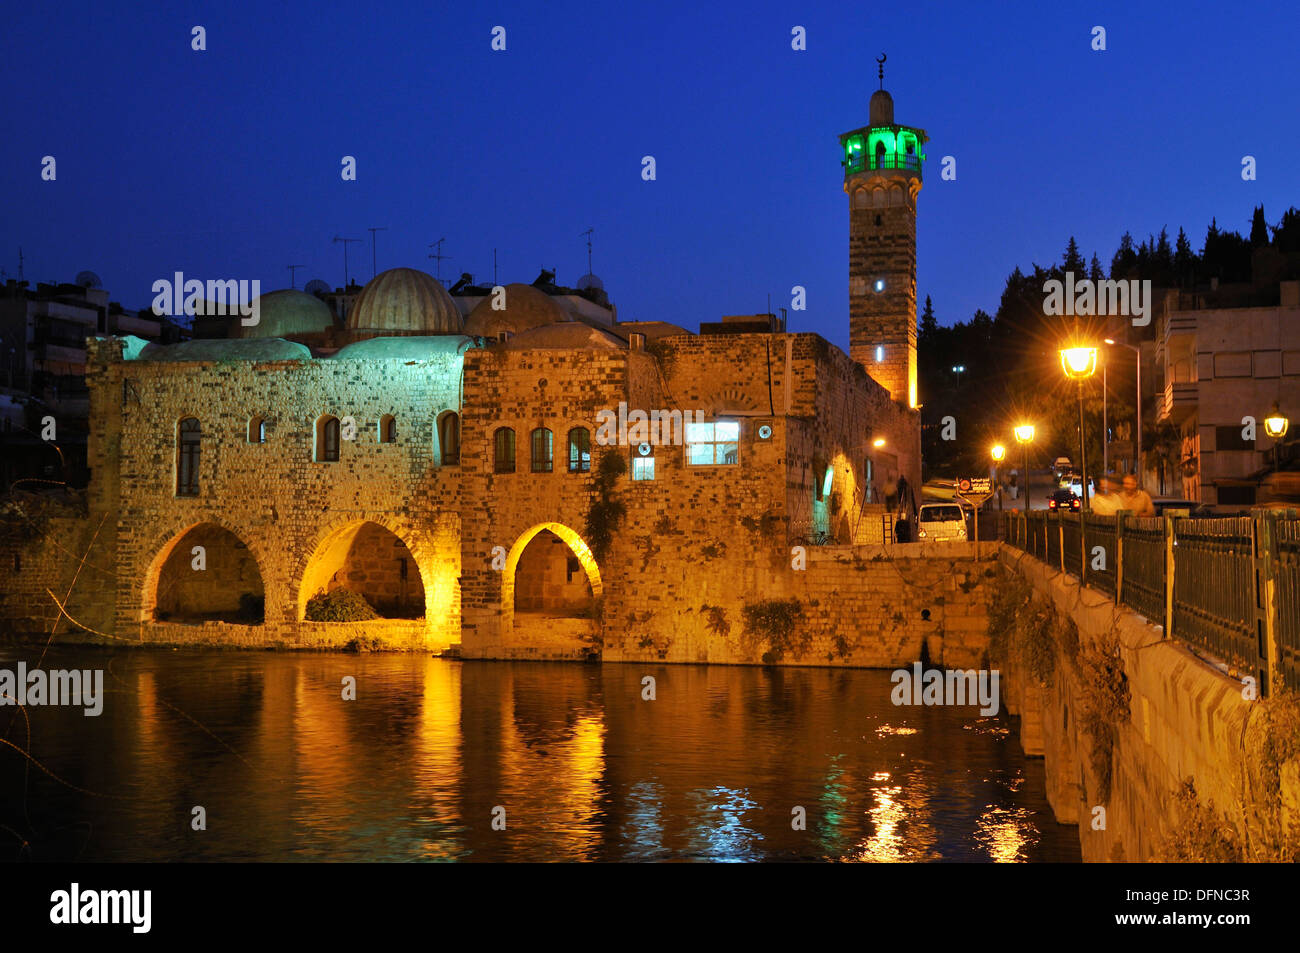 Noria waterwheel on the Orontes River and Nuri, Nouri Mosque in Hama, Syria, Middle East, West Asia Stock Photo